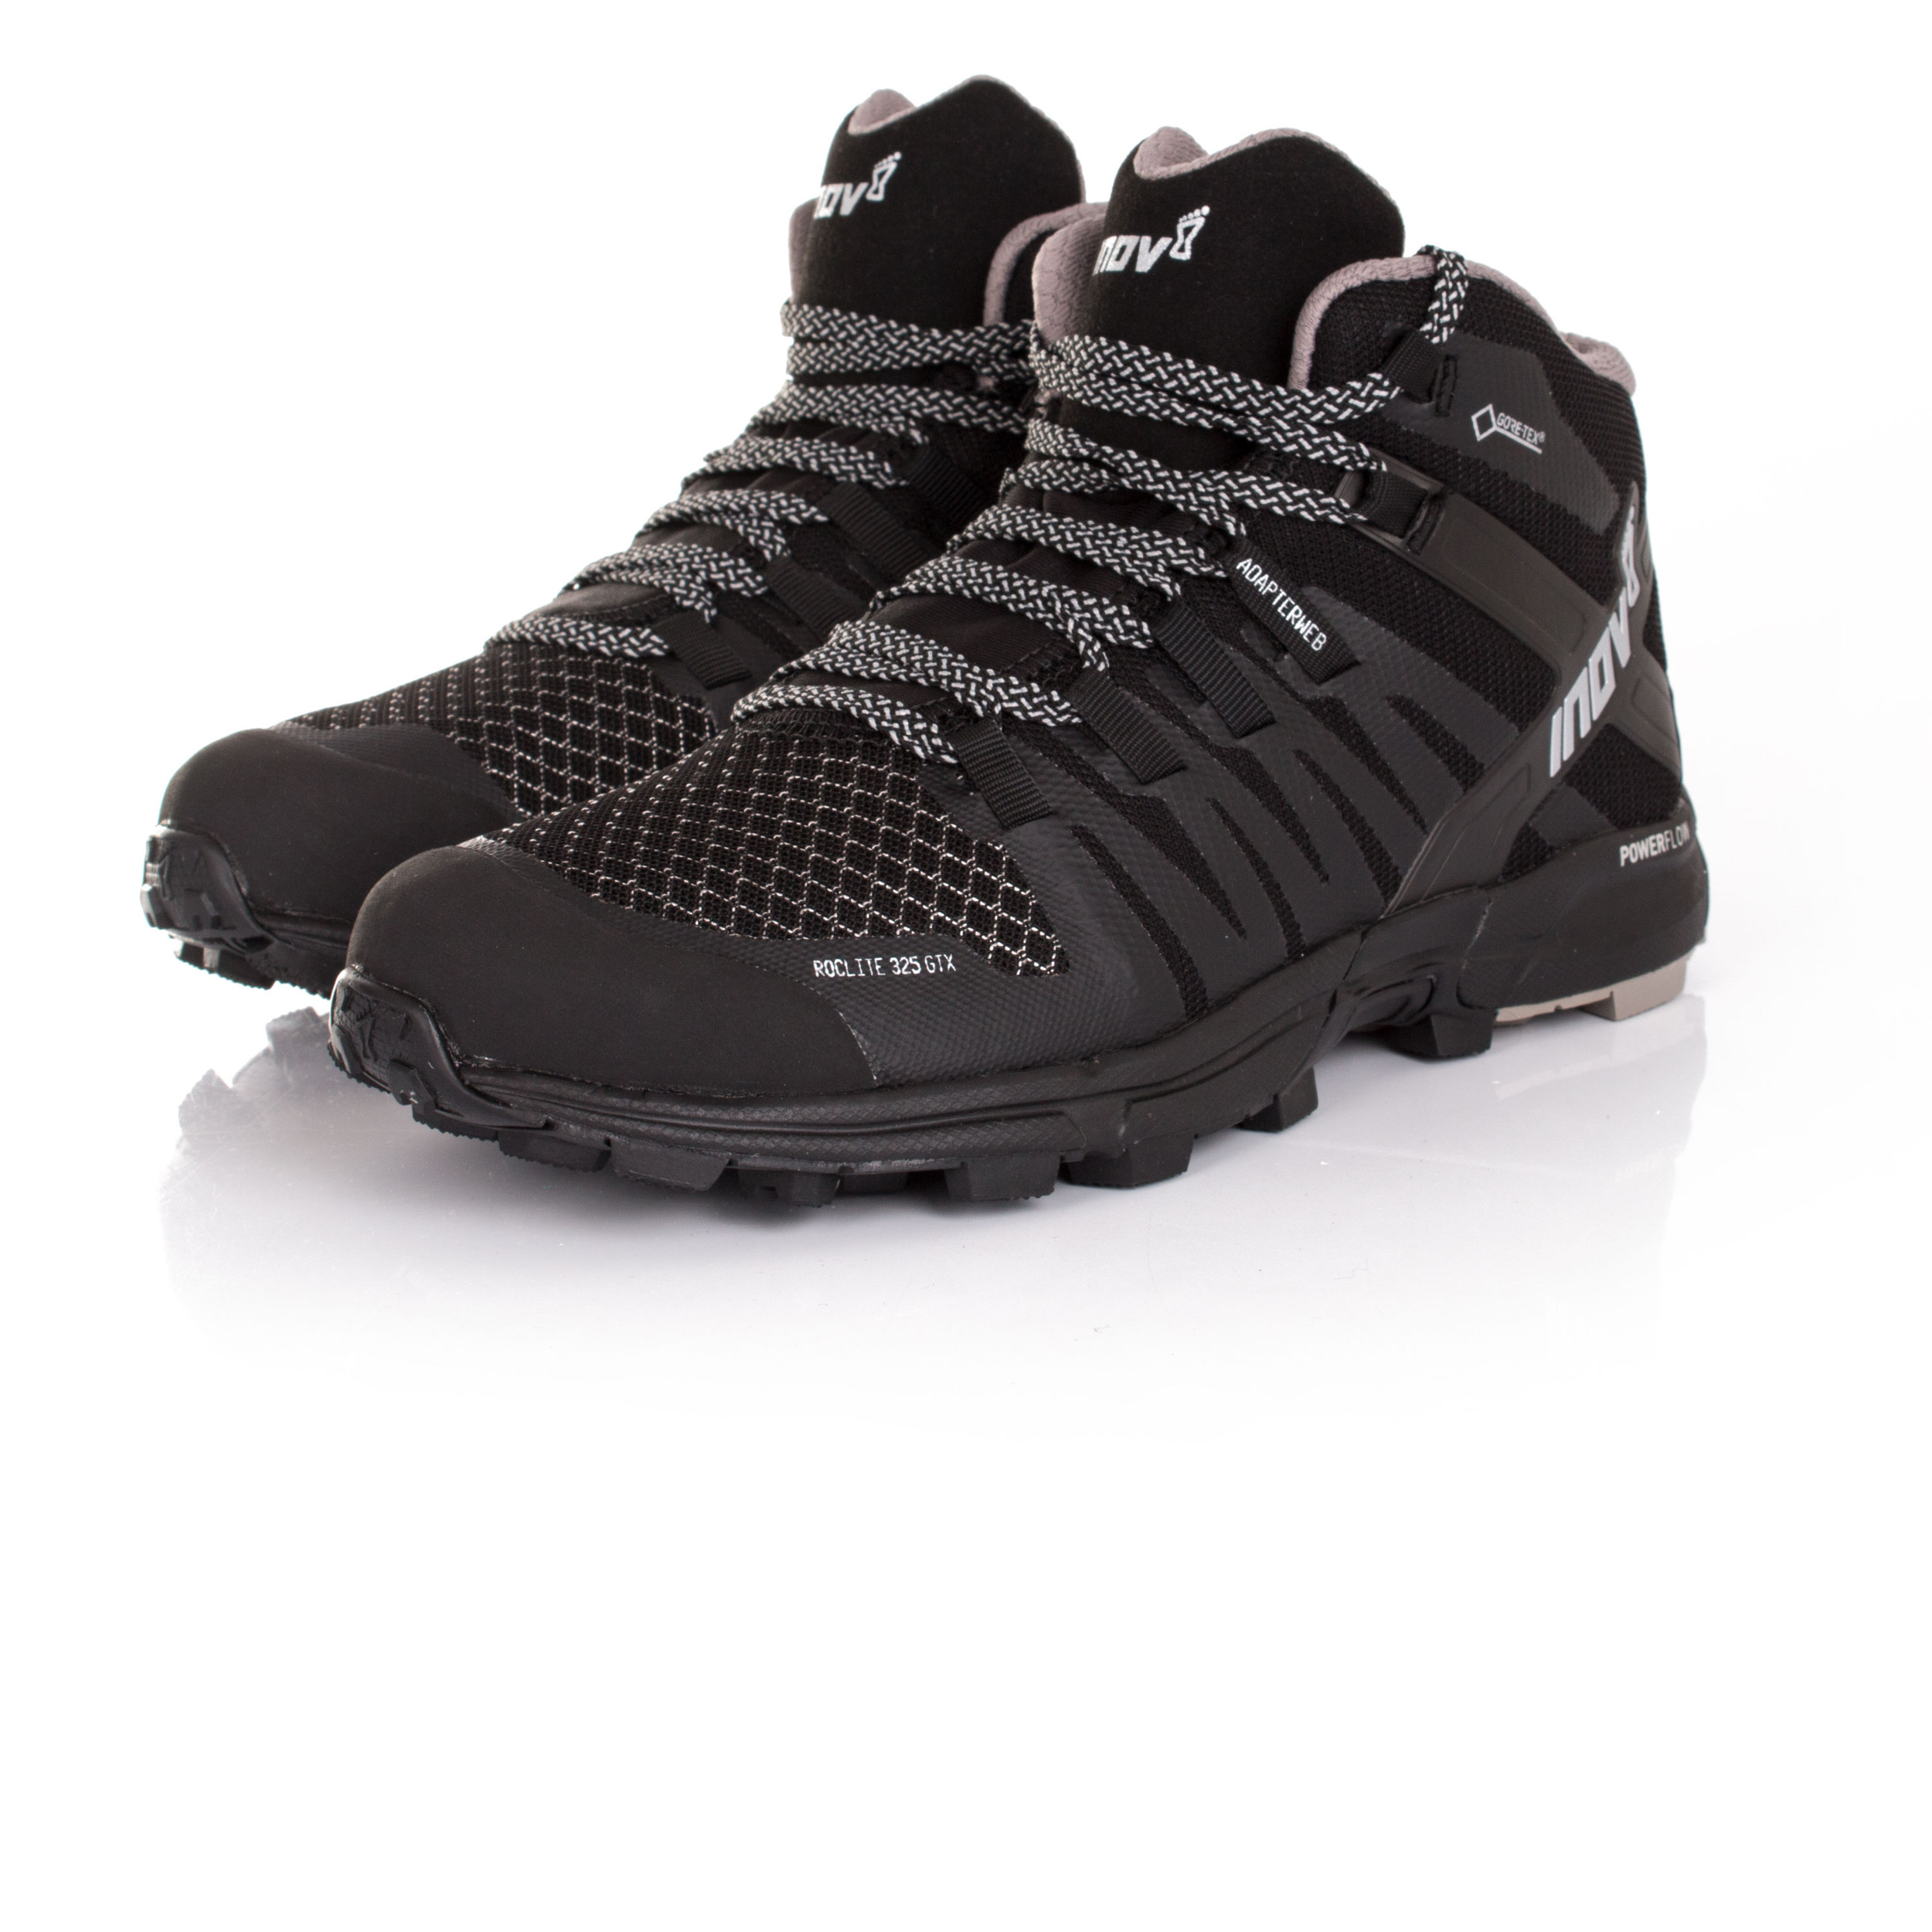 Inov8-Roclite-325-Mens-Black-Waterproof-Gore-Tex-Running-Sports-Shoes-Trainers thumbnail 9